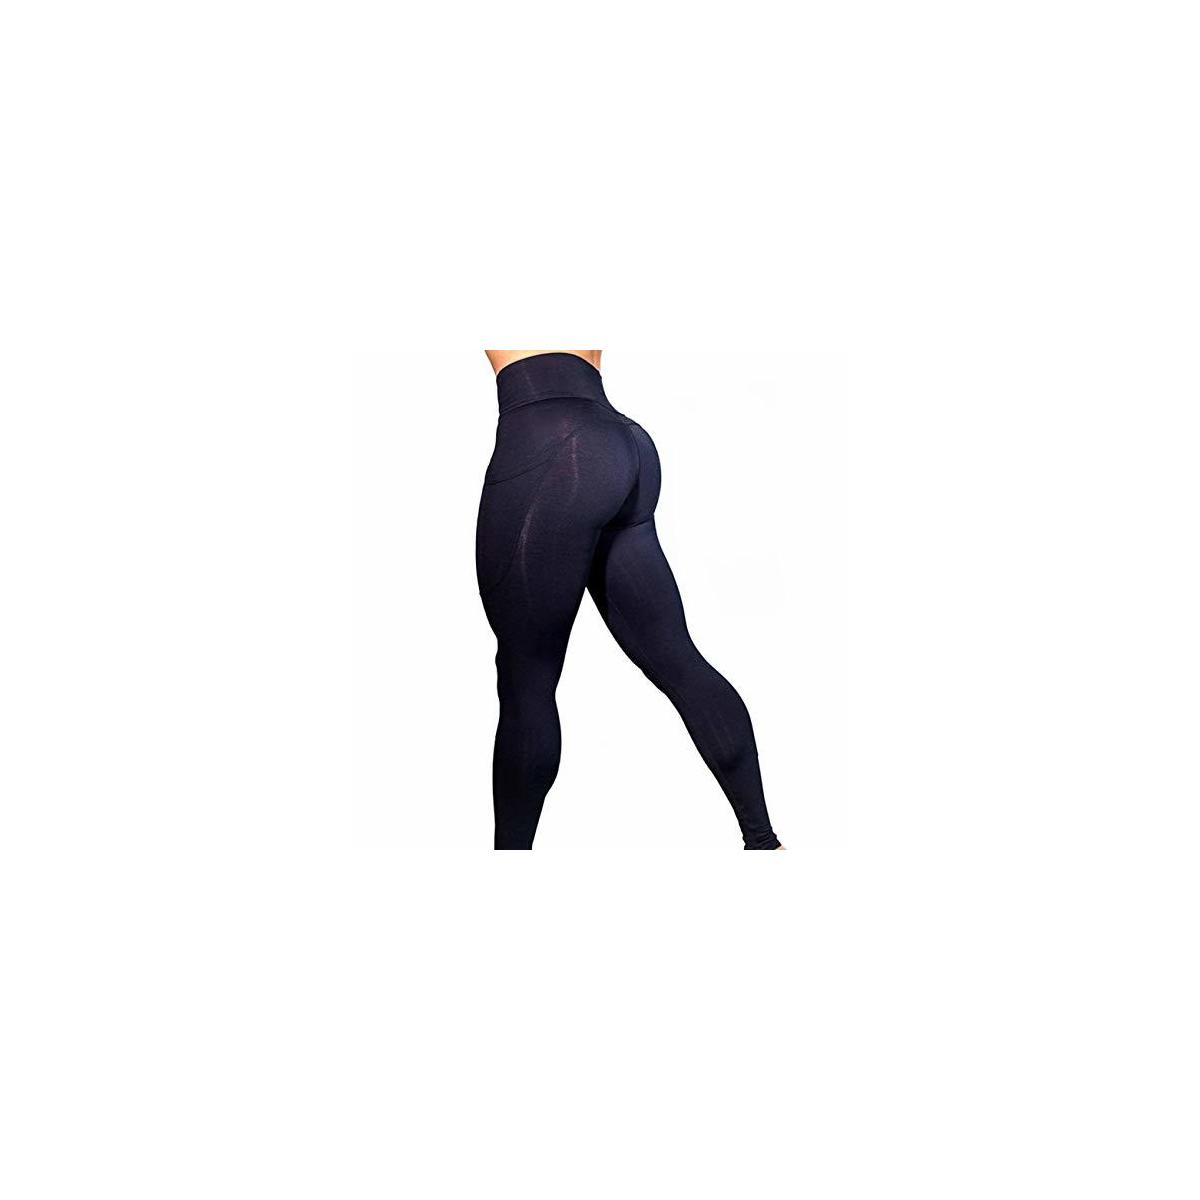 ZENSATION Women's Yoga Pants with High Waste for Improved Tummy Control, with Comfortable Pockets